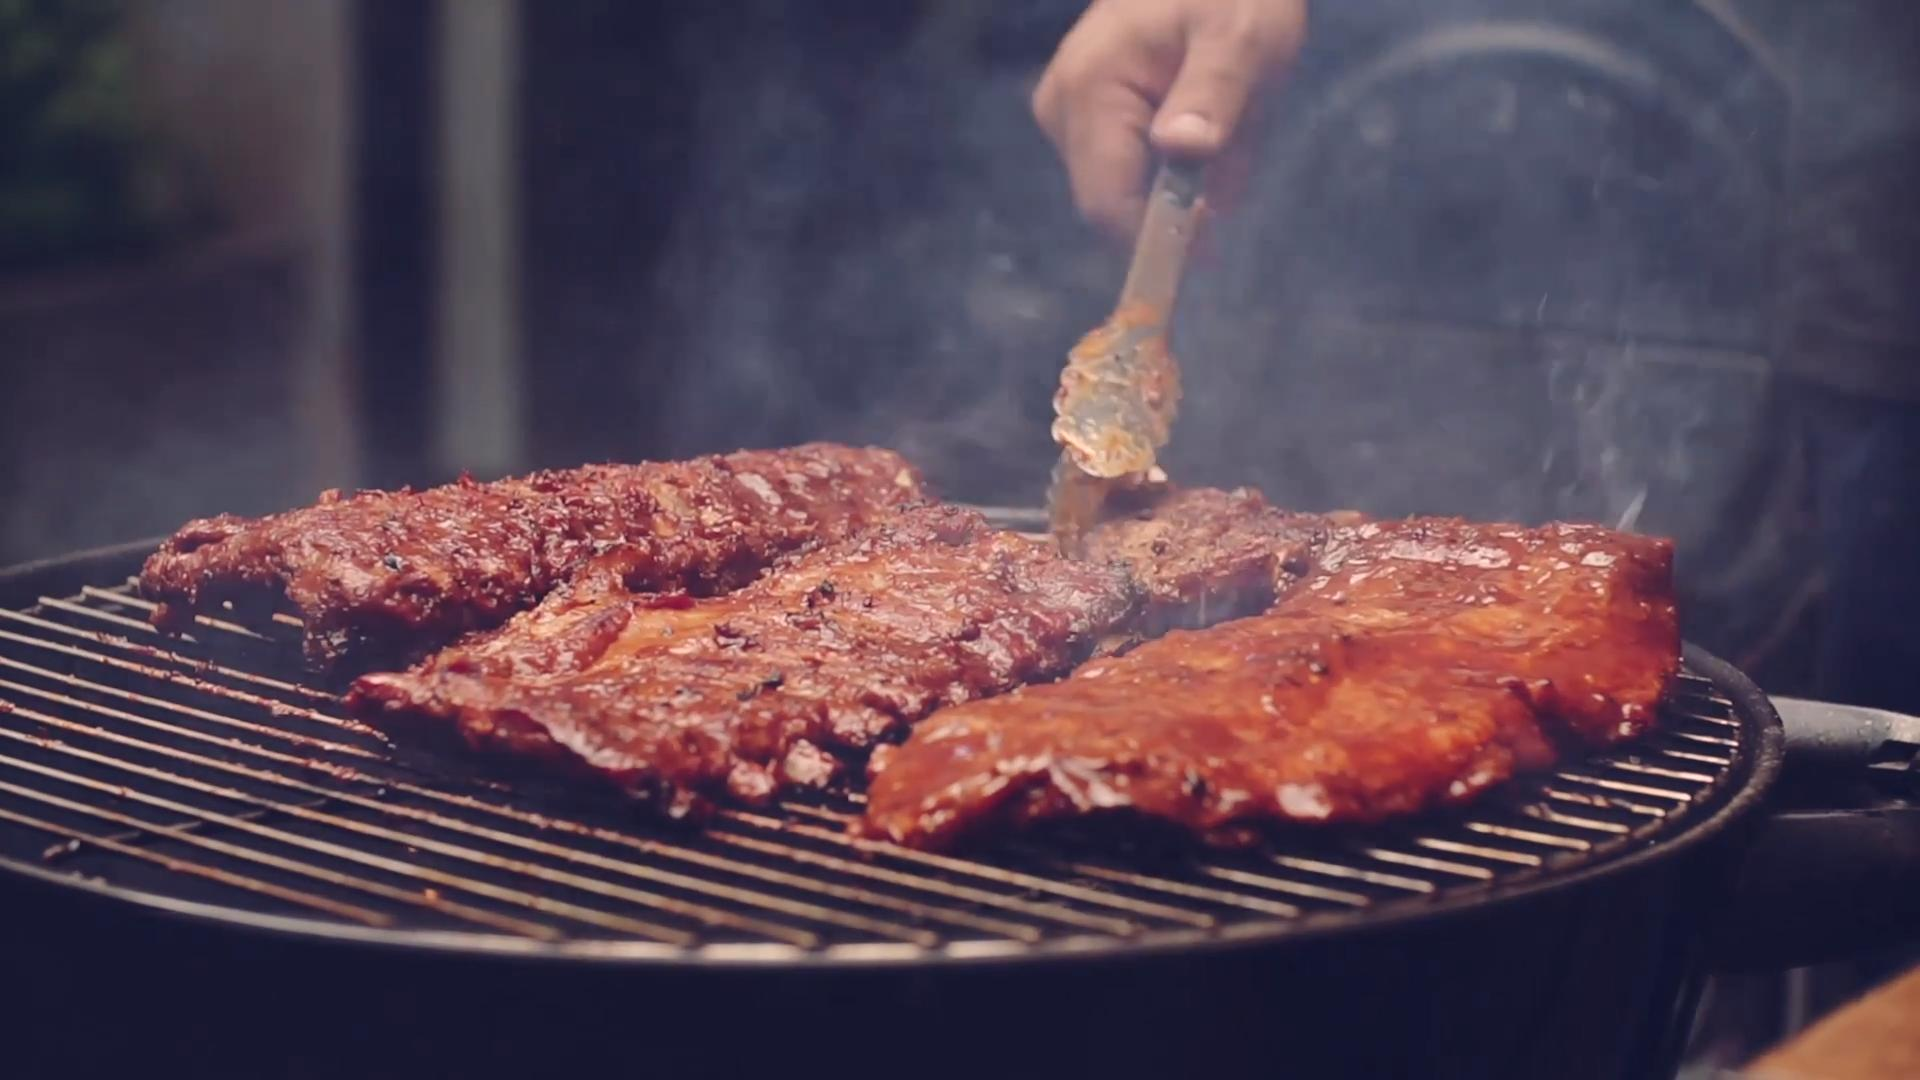 10 BBQ Joints Outside The South That'll Give You A Taste Of Home